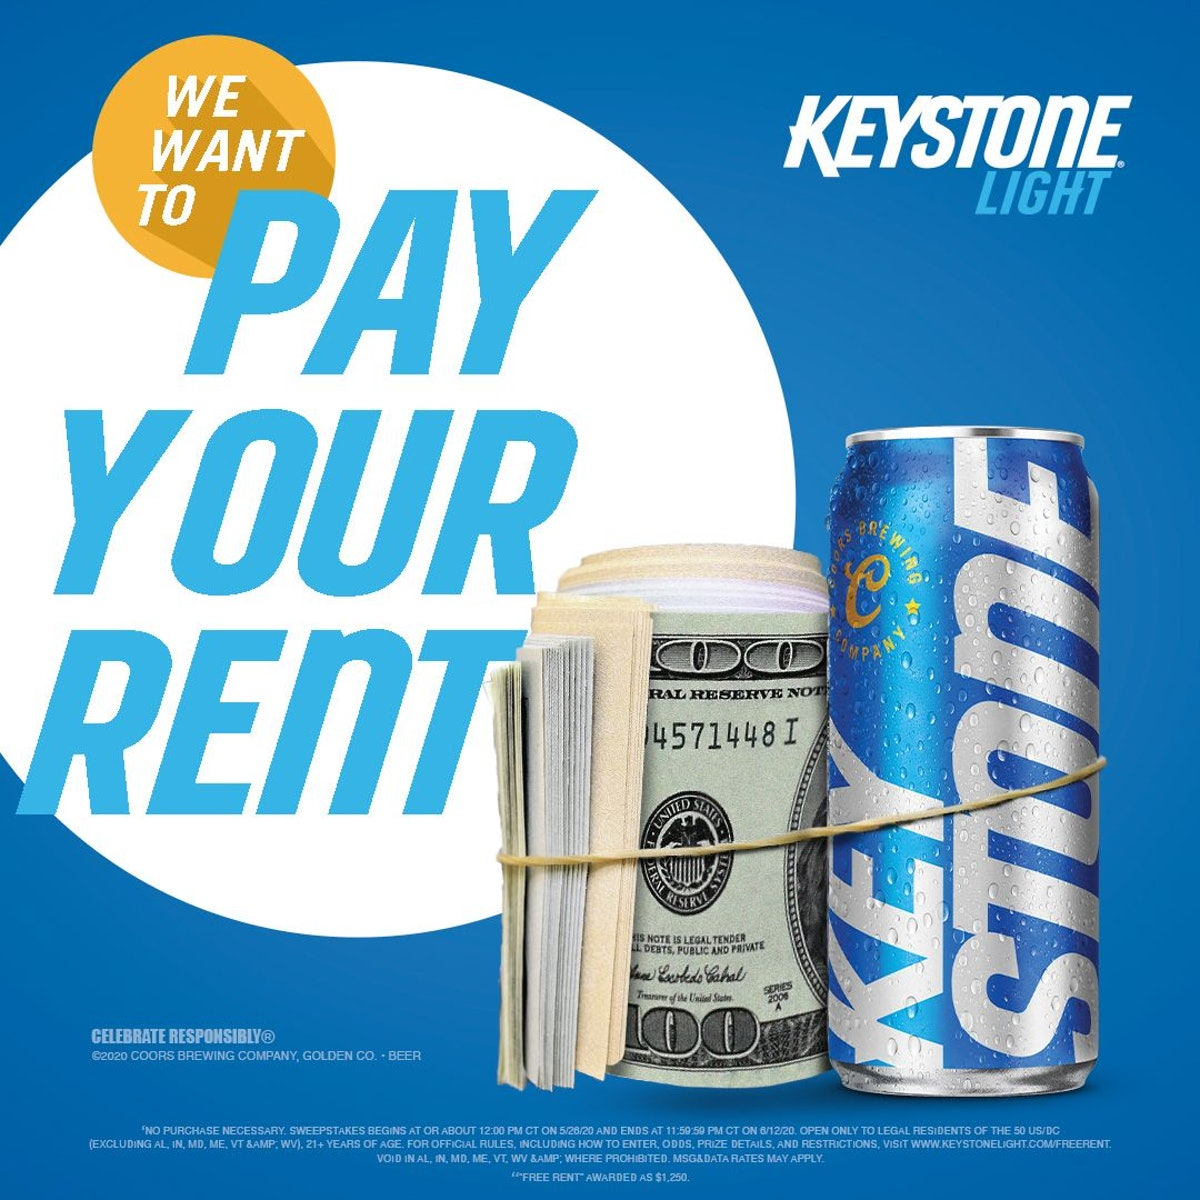 Keystone Light's free rent sweepstakes for July 2020 will award $1,250 to 25 people.